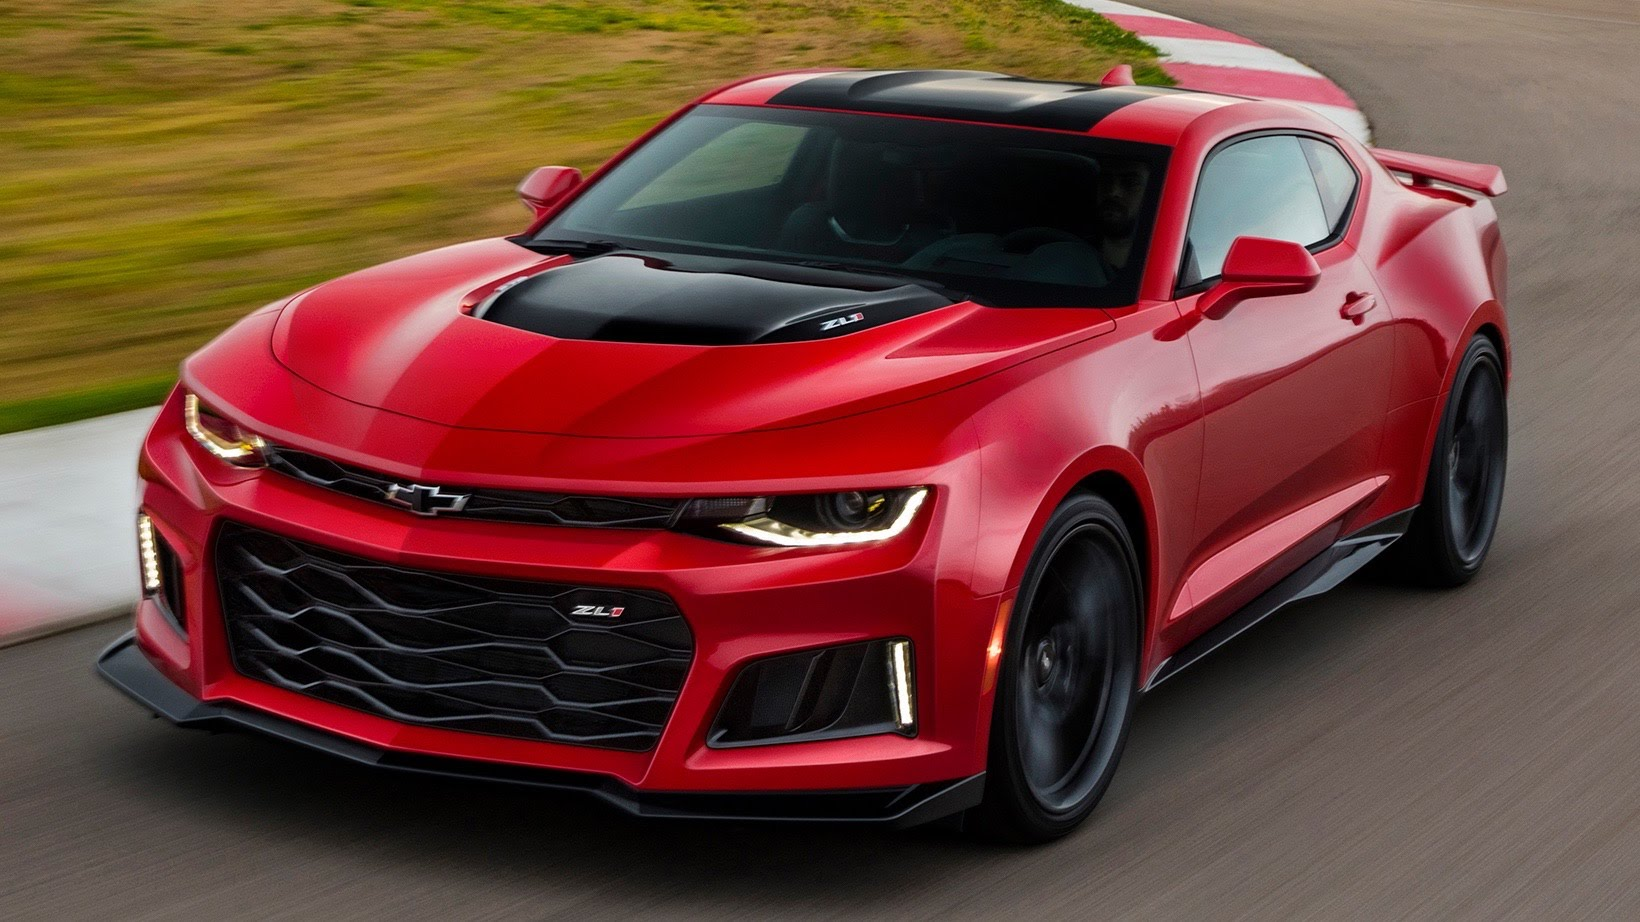 the all-new chevrolet camaro has been launched